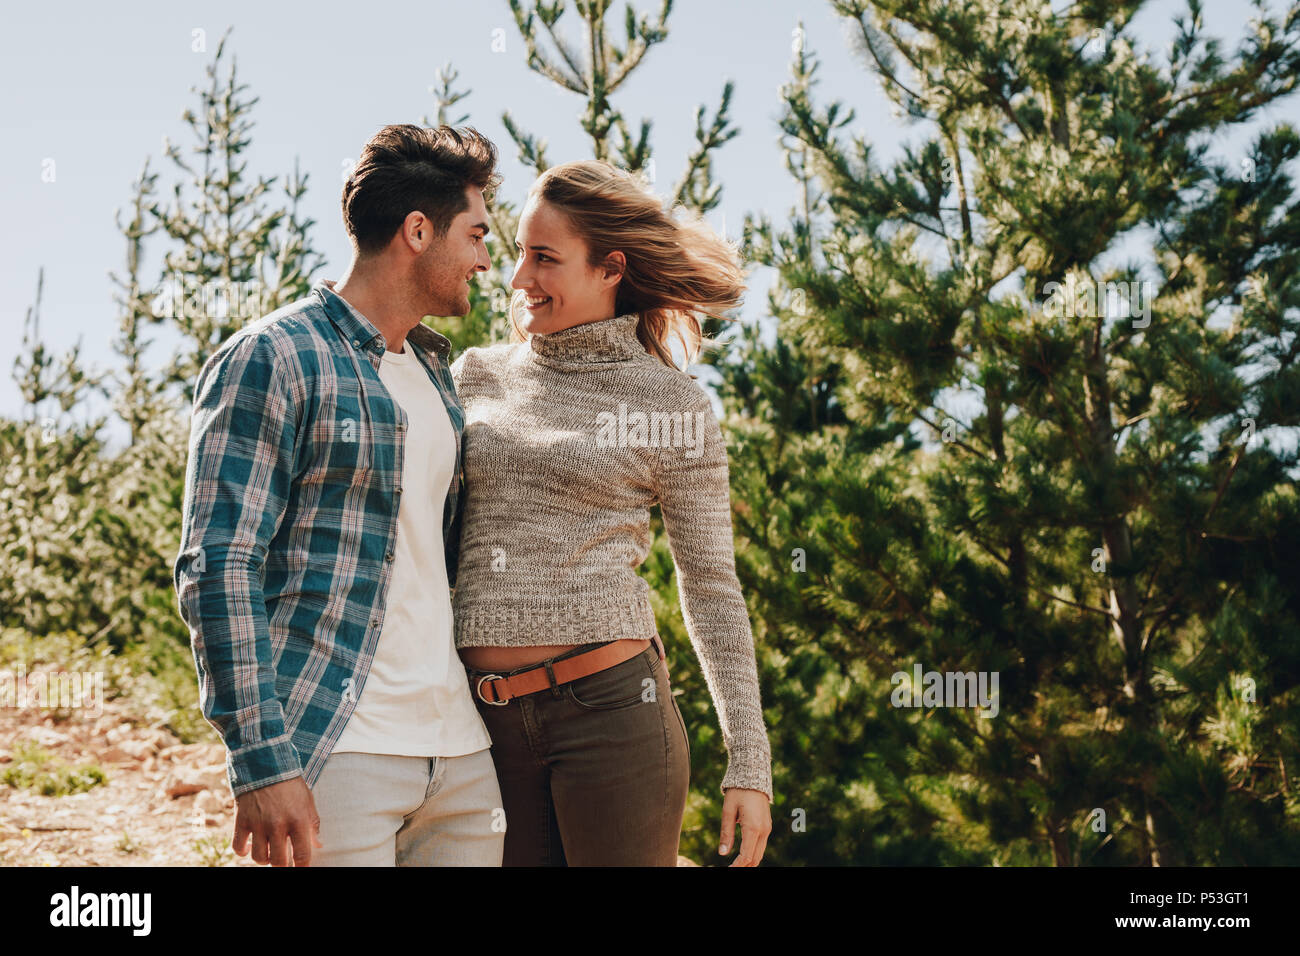 Loving young couple looking at each other and smiling. Man and woman standing outdoors on mountain trail during hiking. - Stock Image